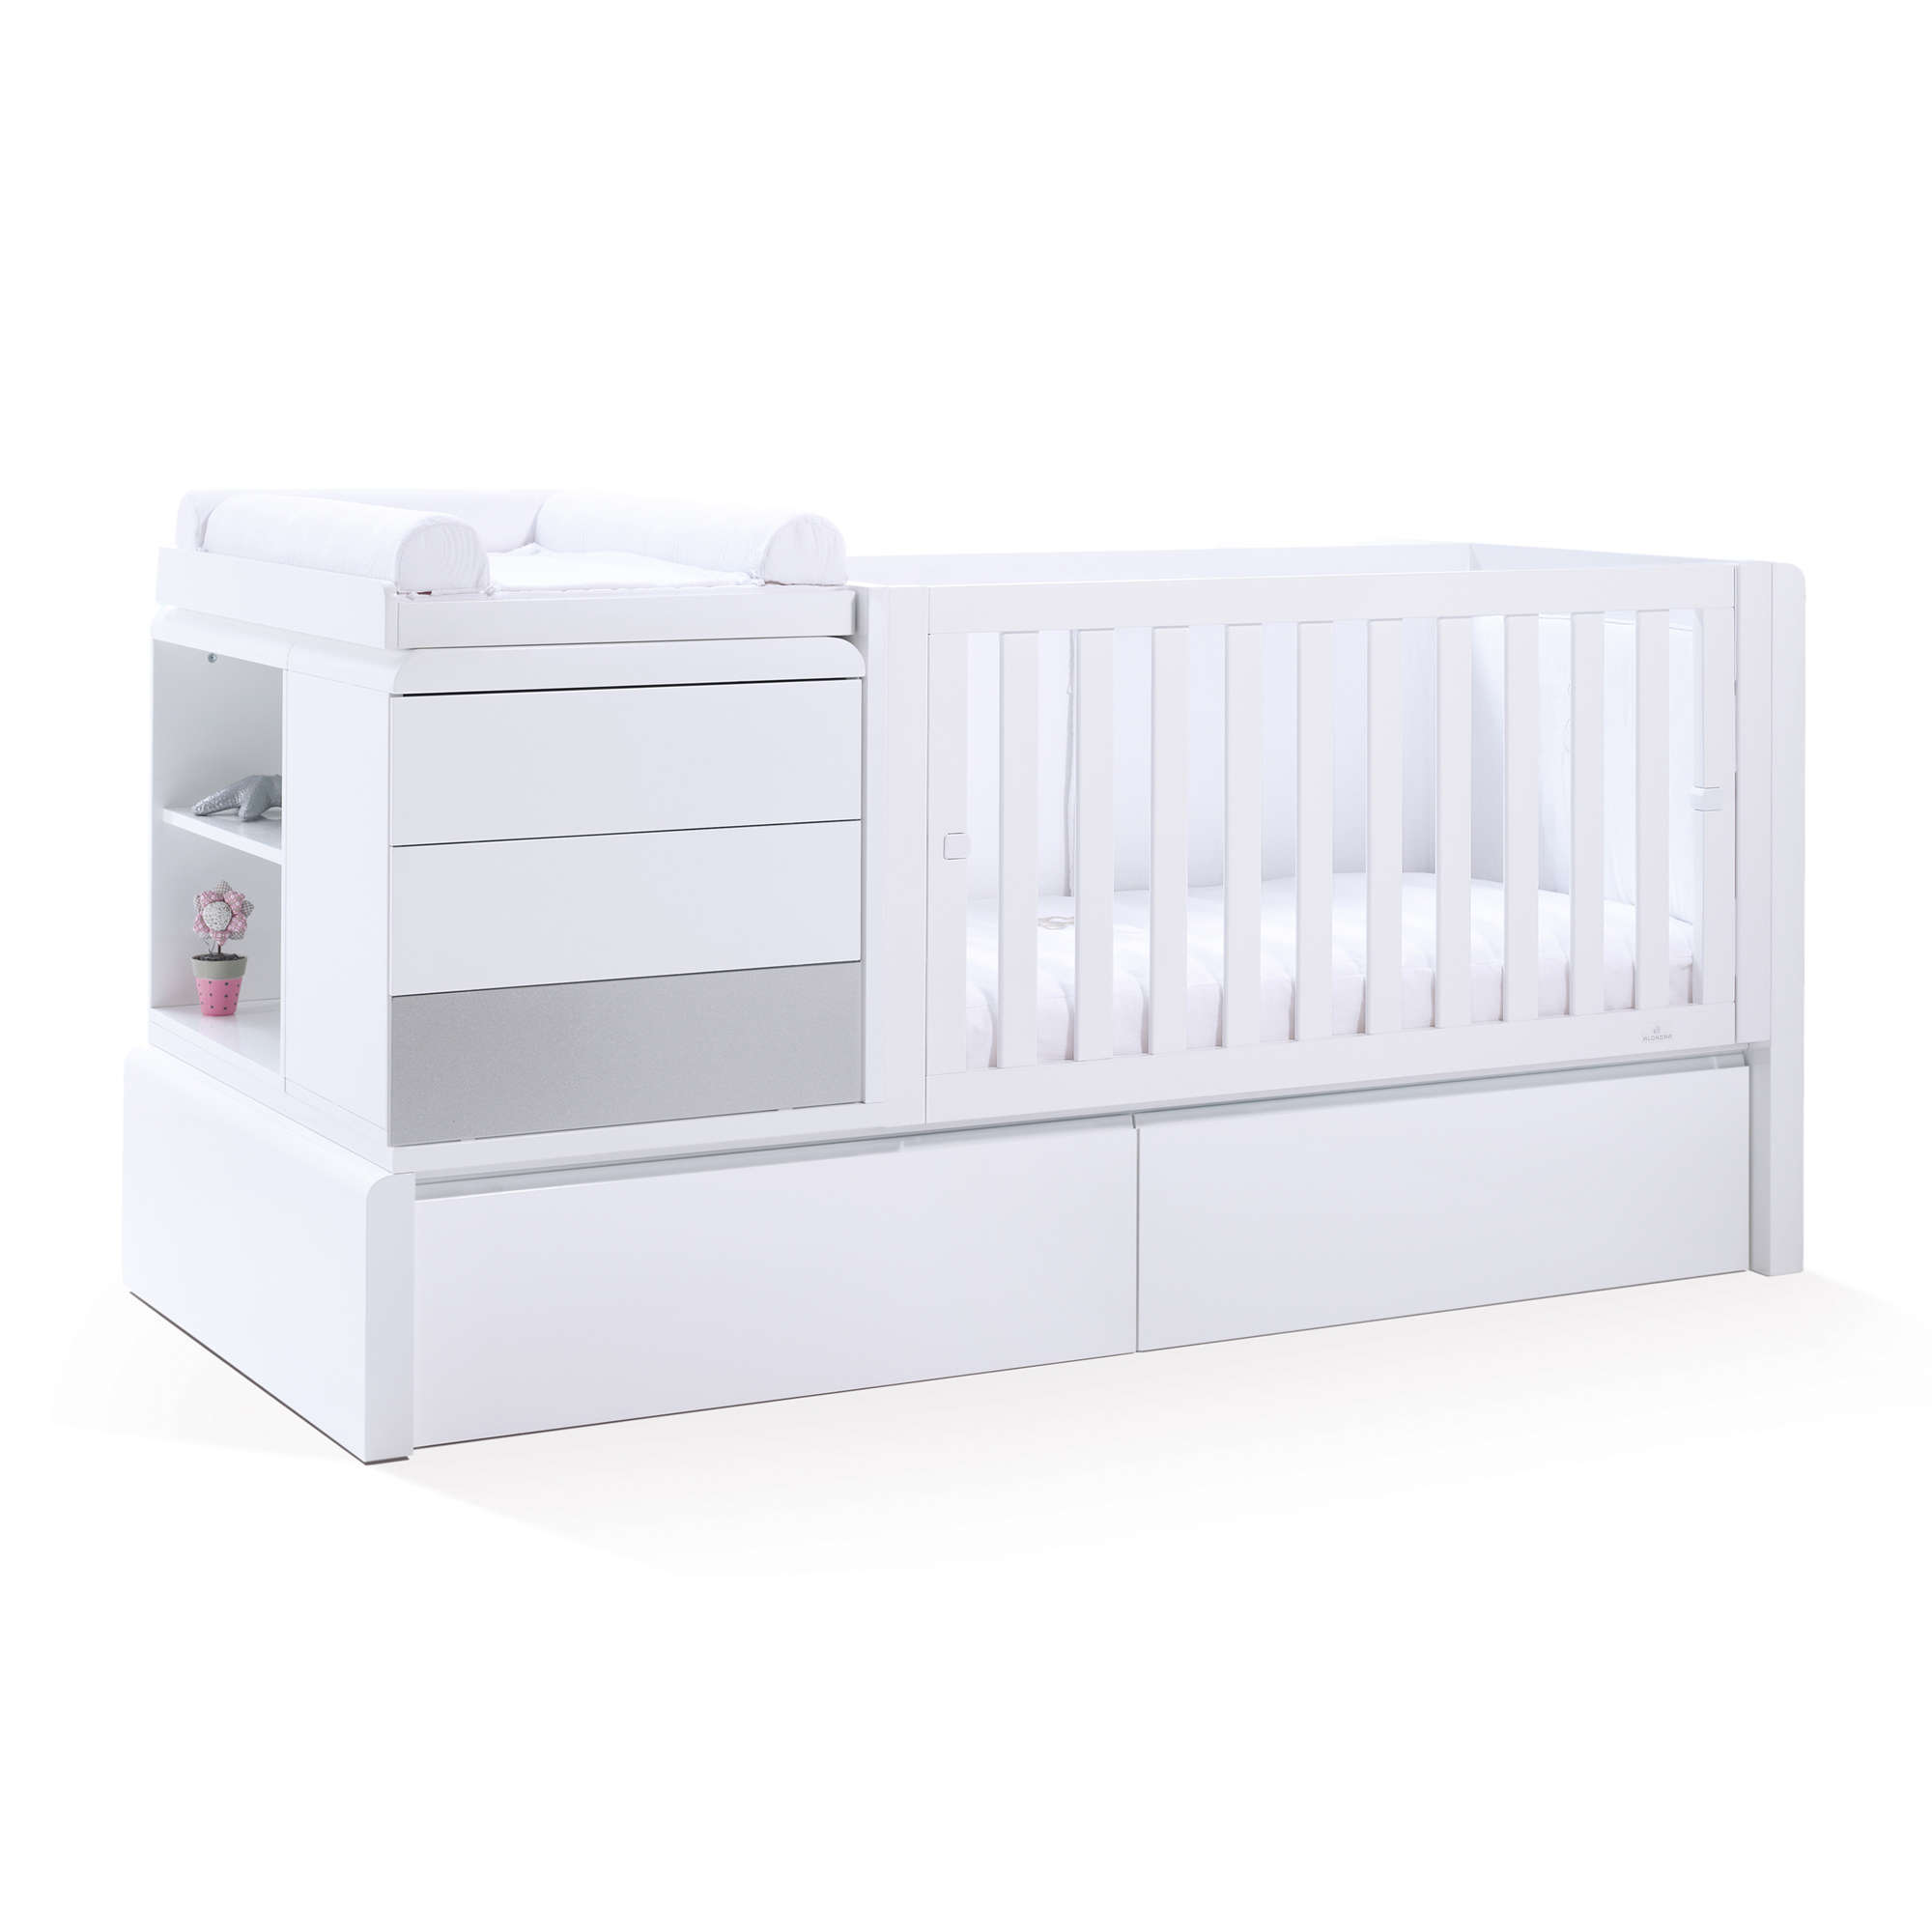 Sears Baby Cribs Image Of Graco Baby Furniture Canada With Sears Baby Cribs Great Graco Remi